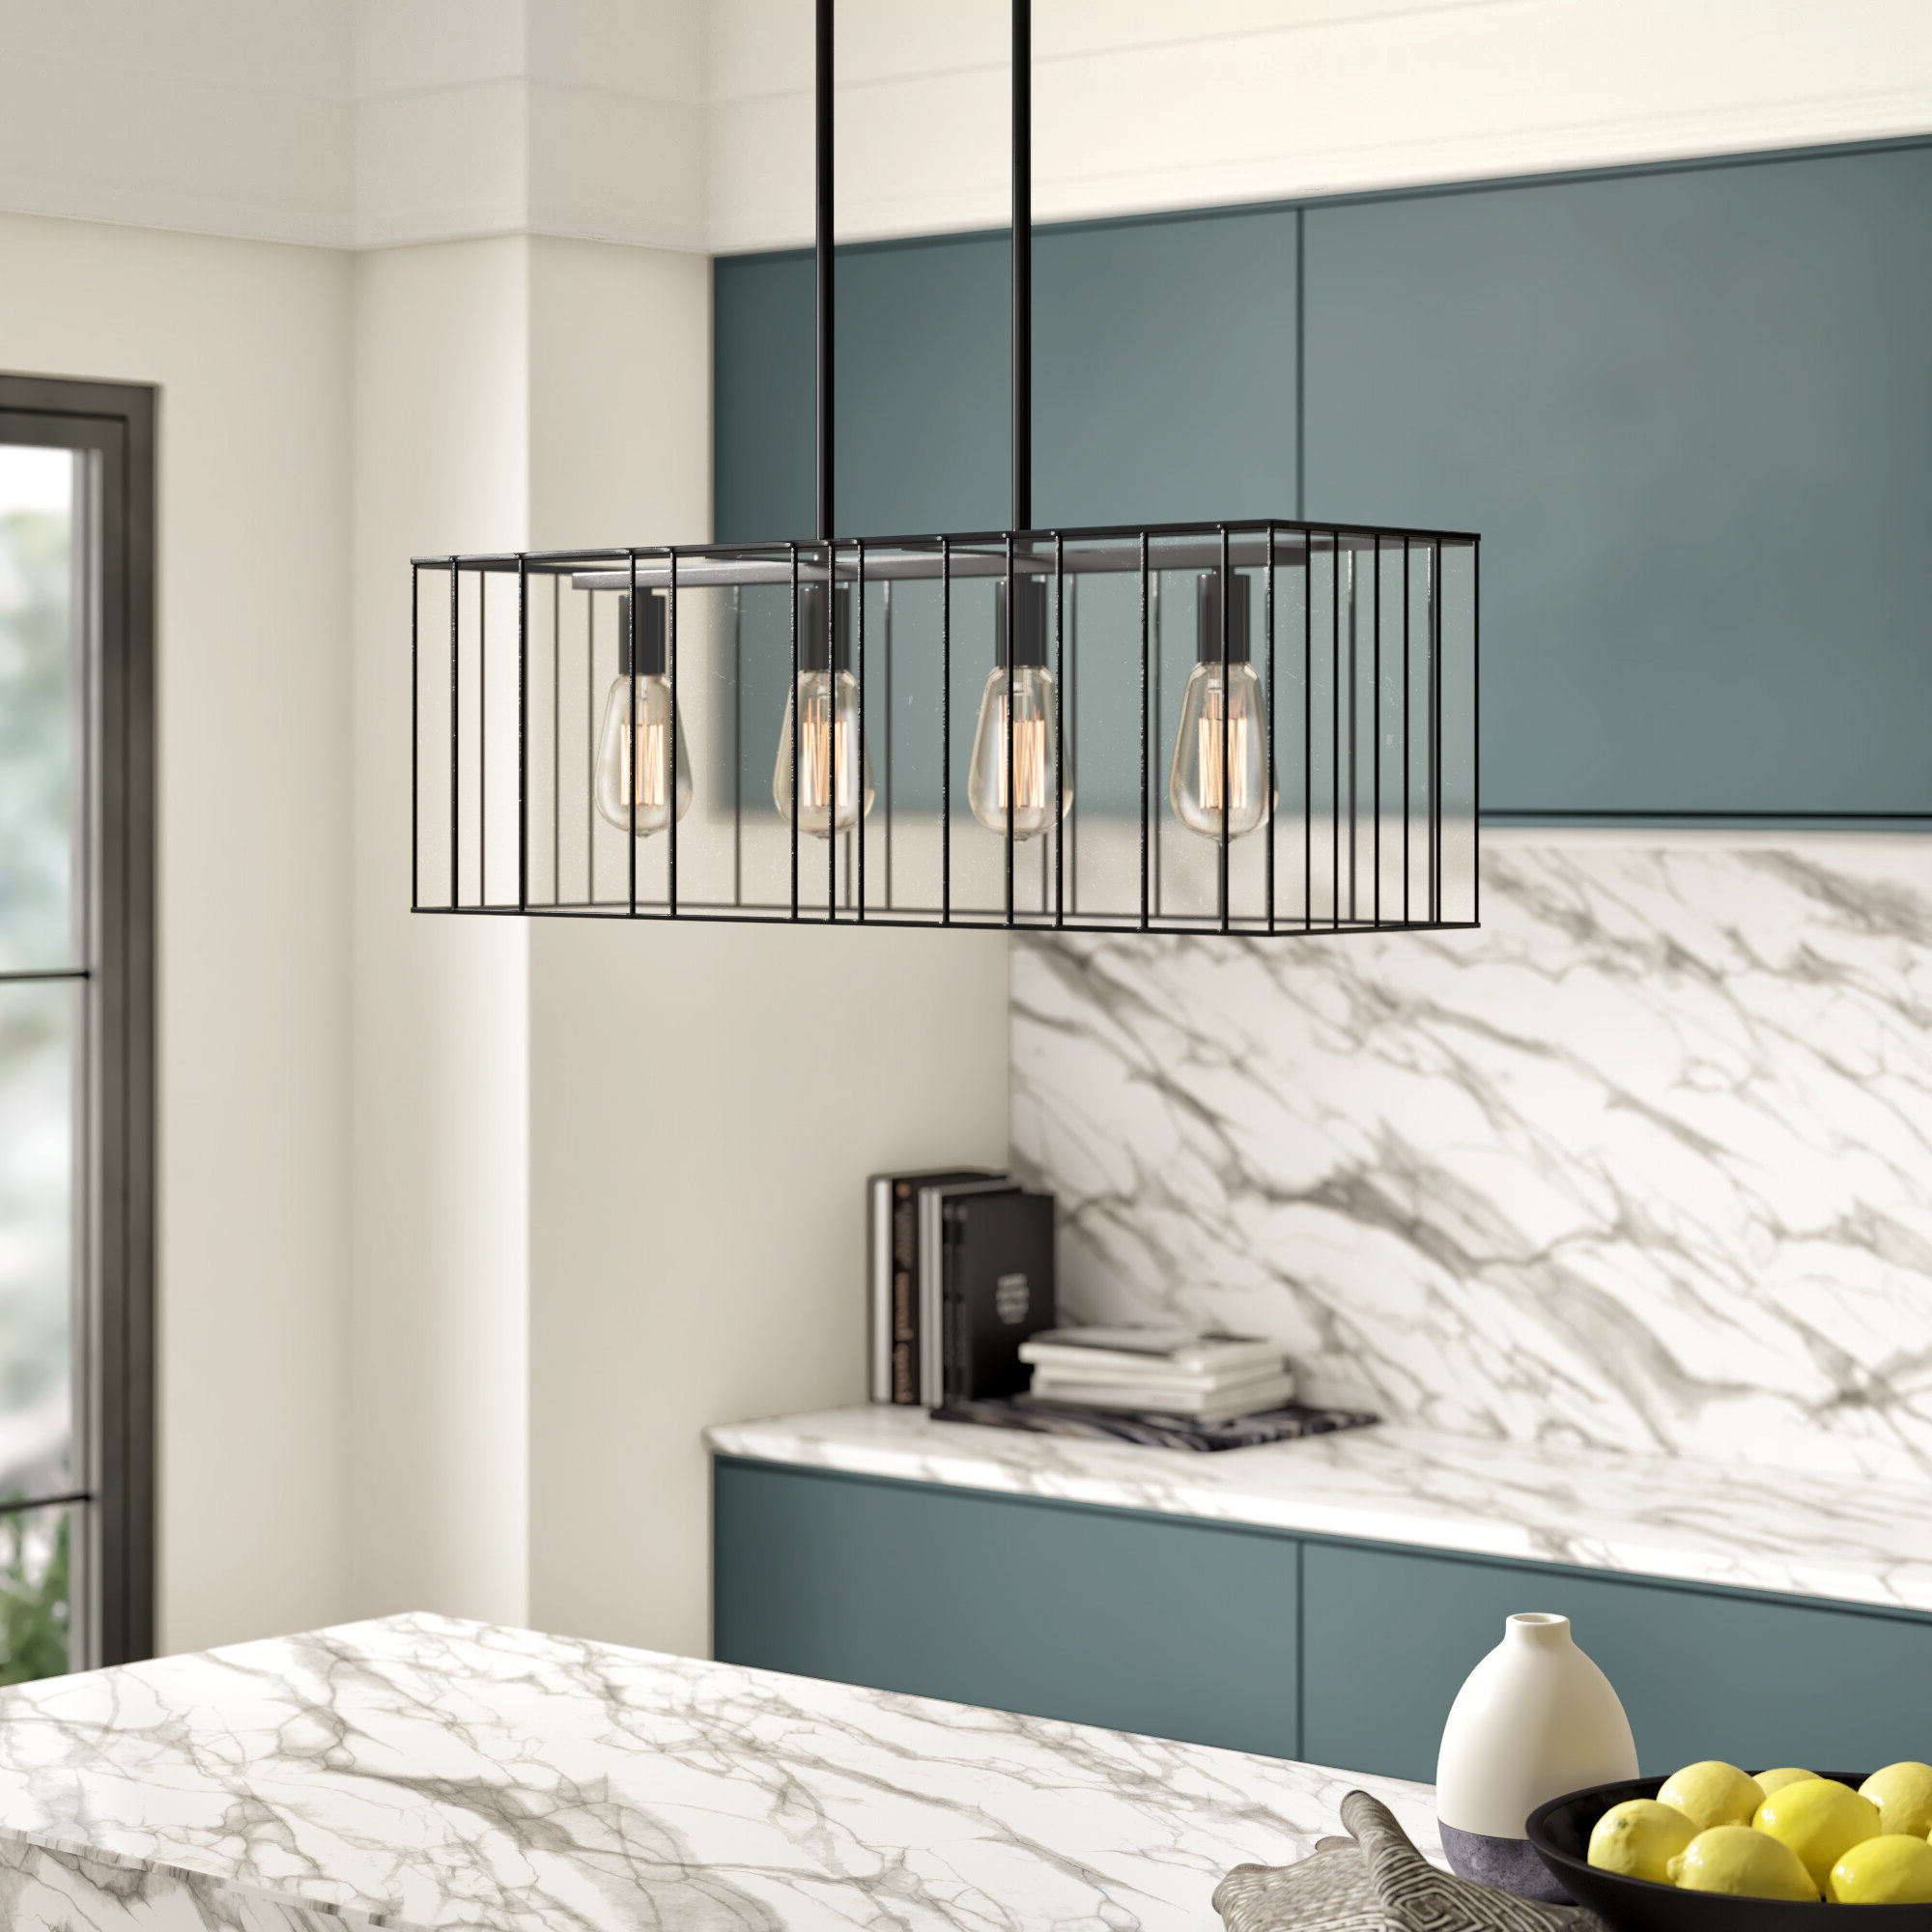 Byford 4 Light Kitchen Island Linear Pendant Intended For 2019 Odie 8 Light Kitchen Island Square / Rectangle Pendants (View 20 of 20)